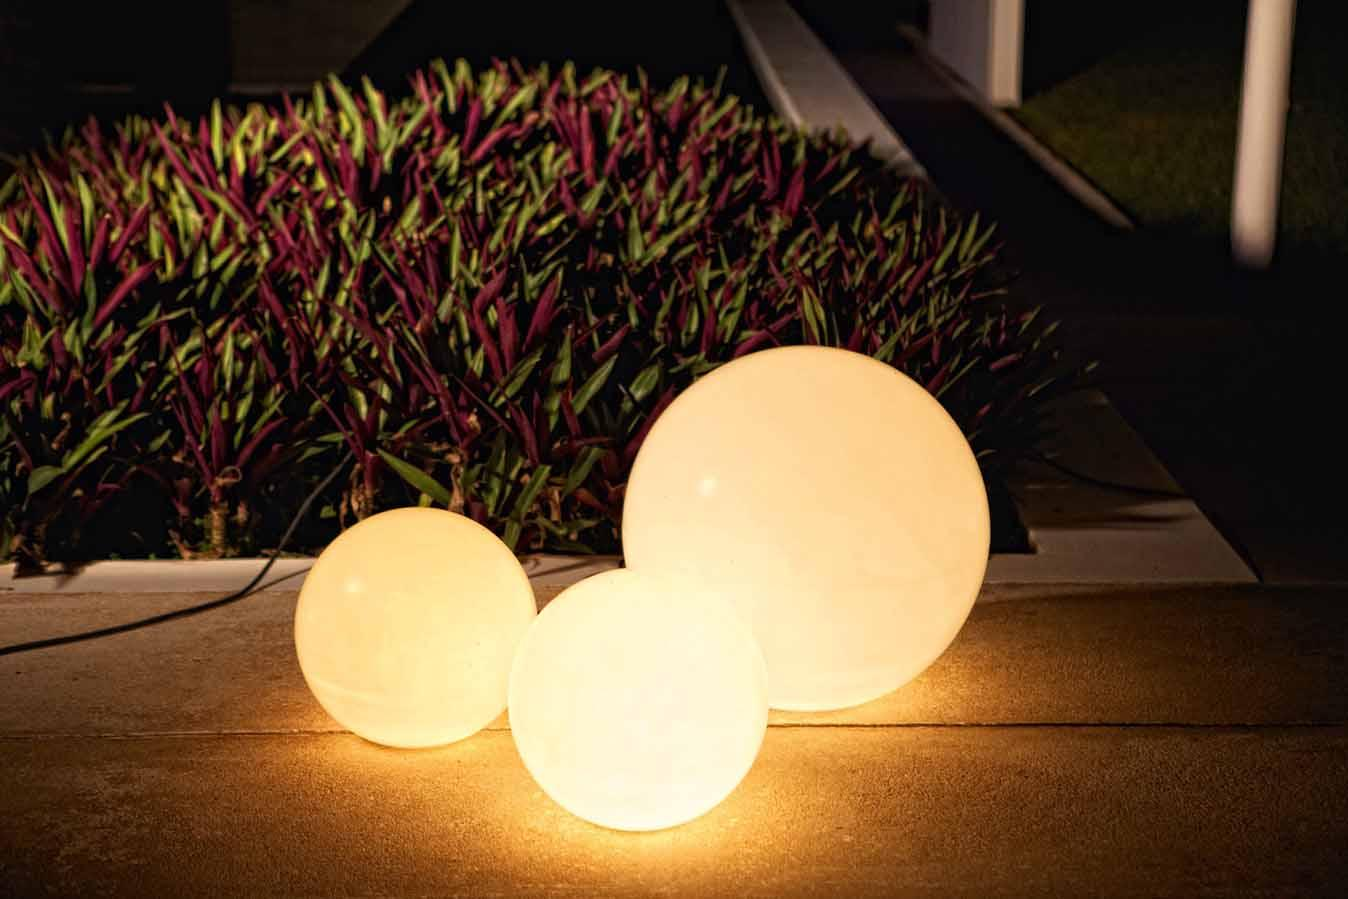 Globe outdoor lights provides an aesthetic look to the home globe outdoor lights provides an aesthetic look to the home aloadofball Choice Image